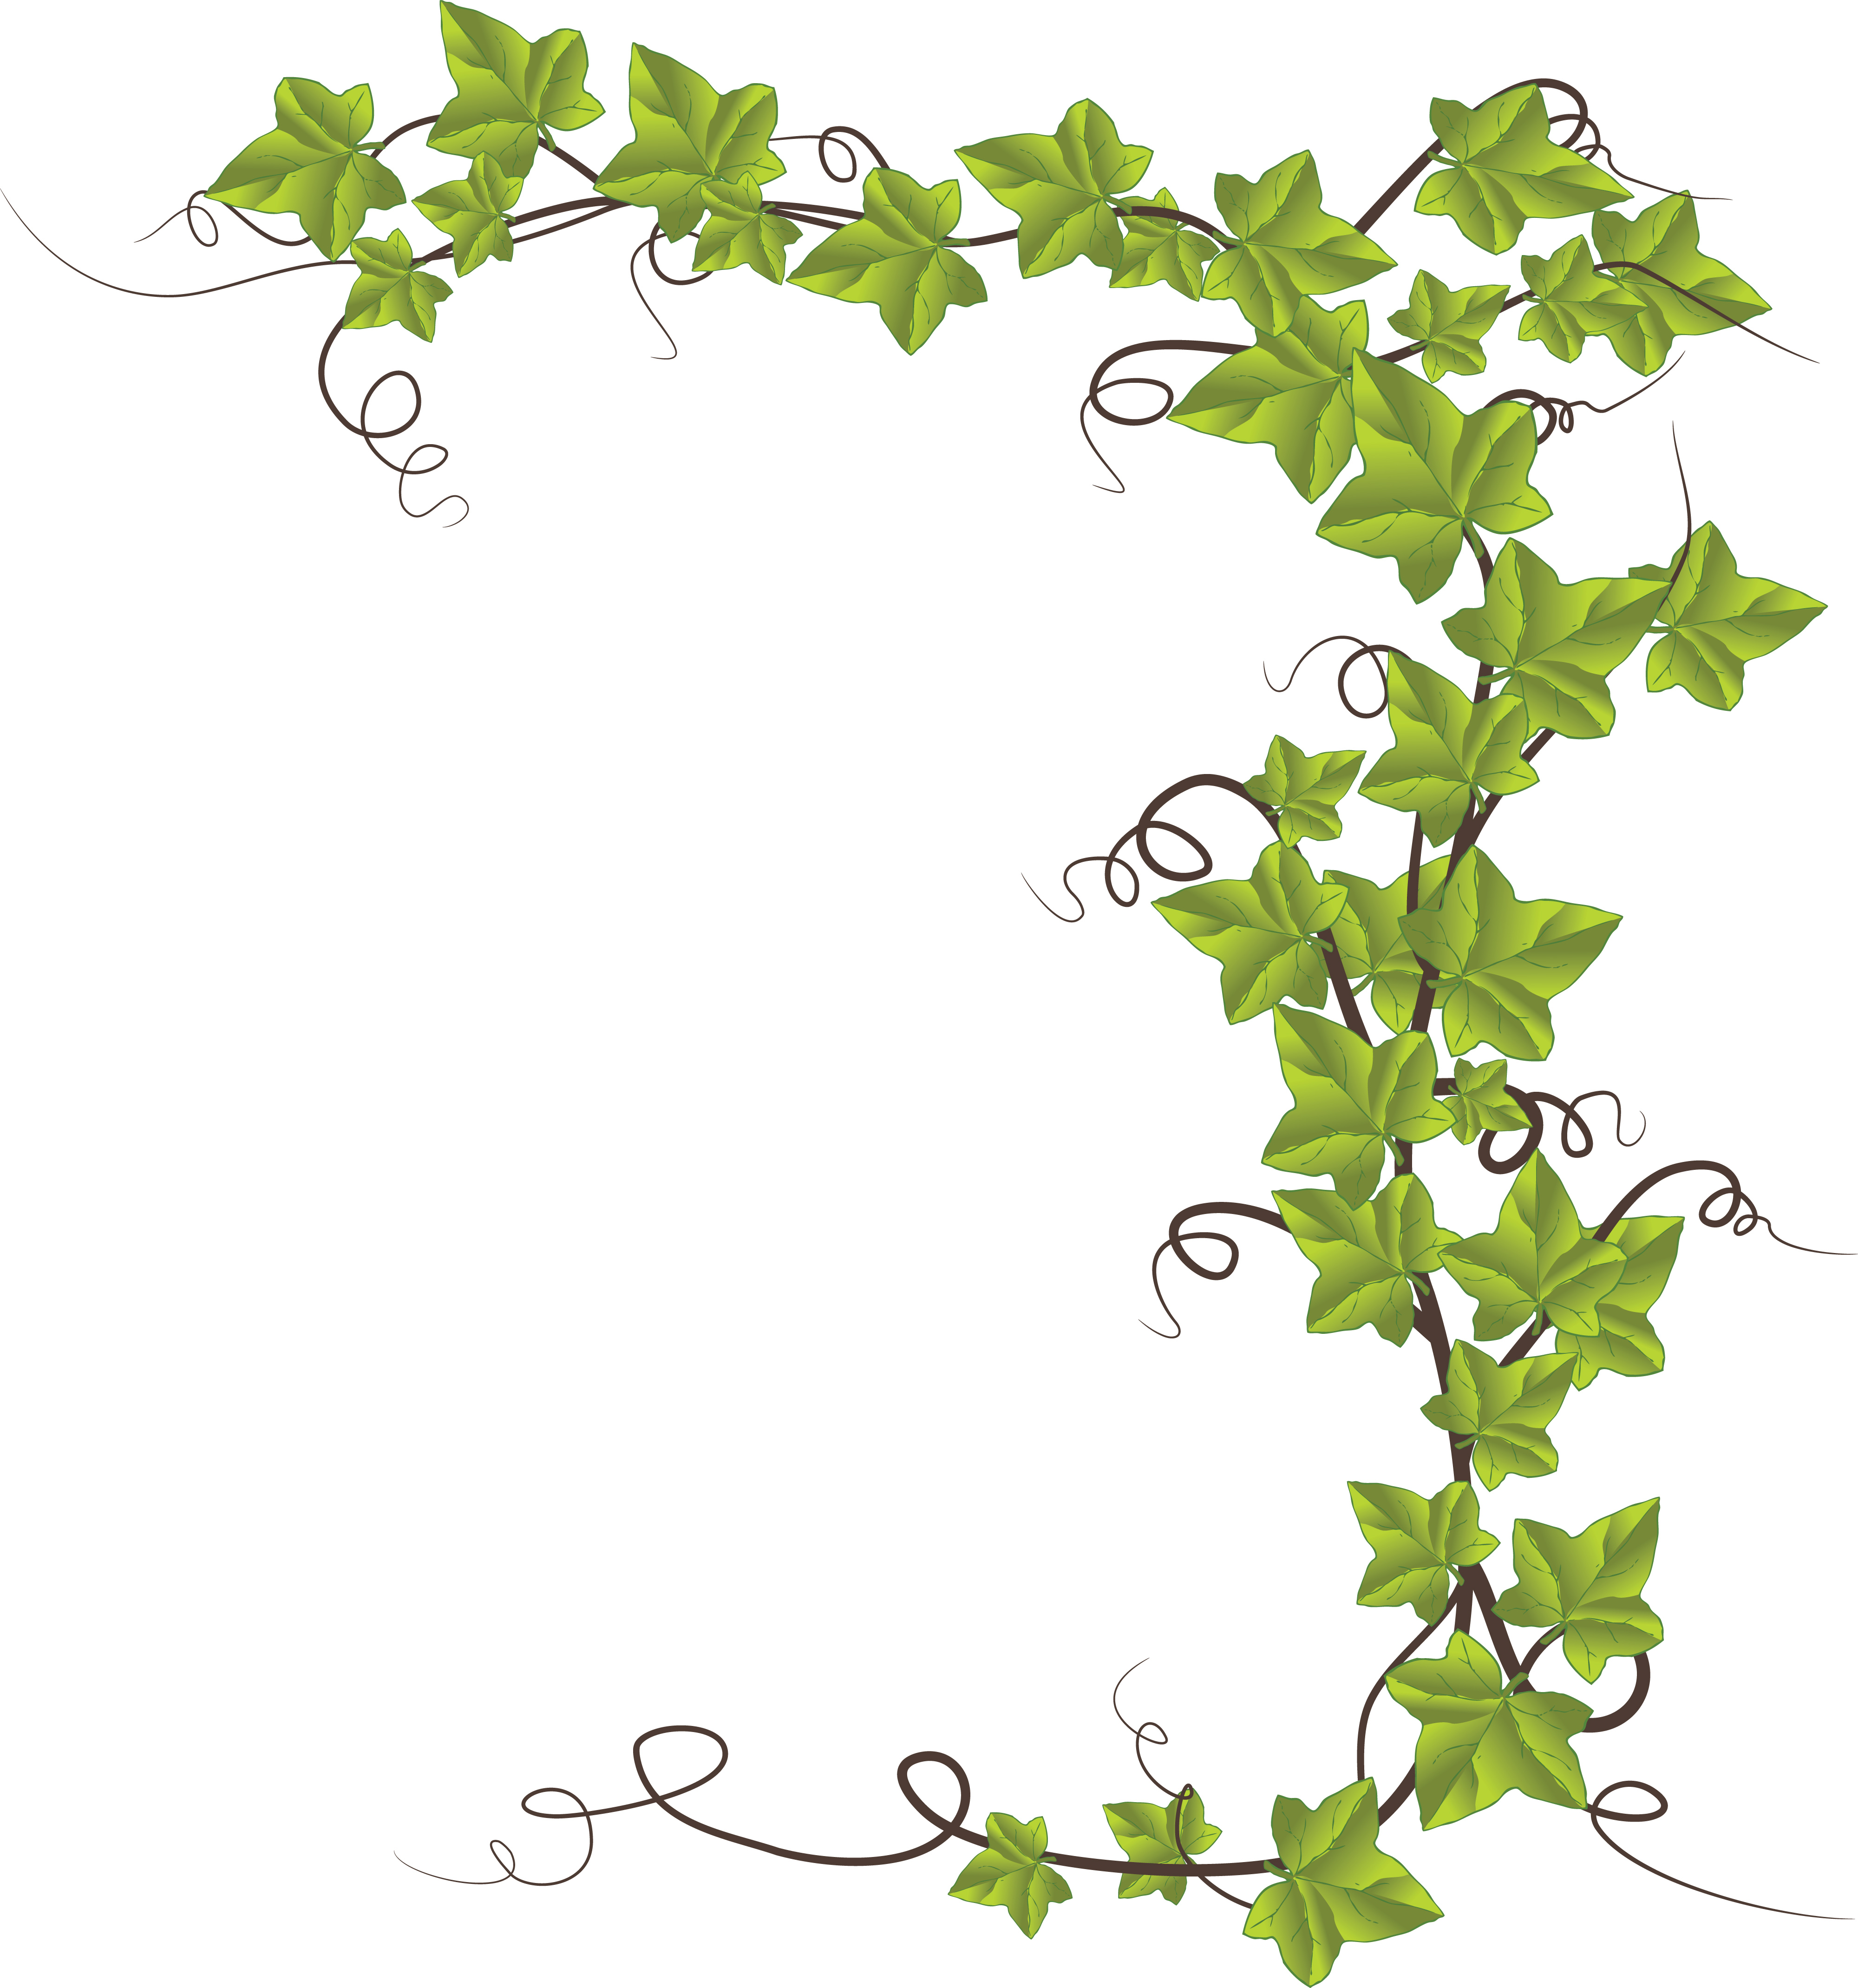 991 Ivy free clipart.